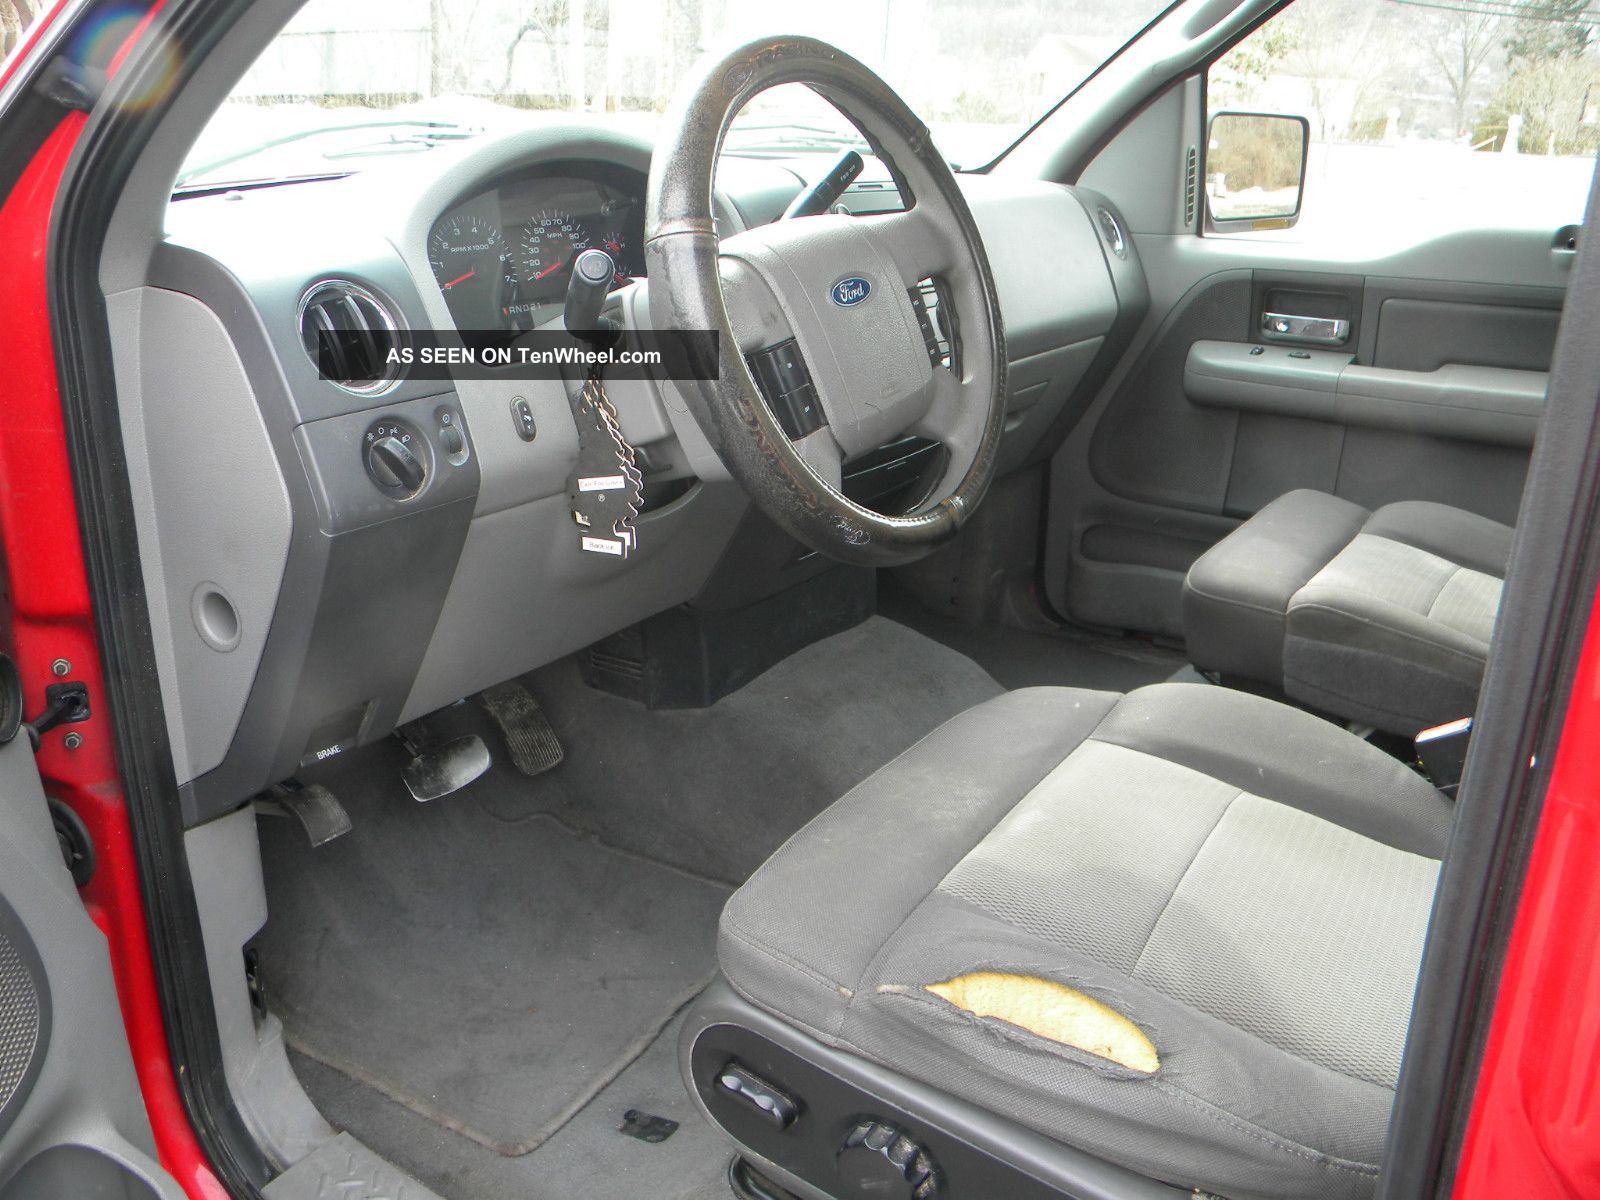 2004 Ford F150 4x4 Xlt Crew Cab Shortbed F 150 Supercrew Photo 6